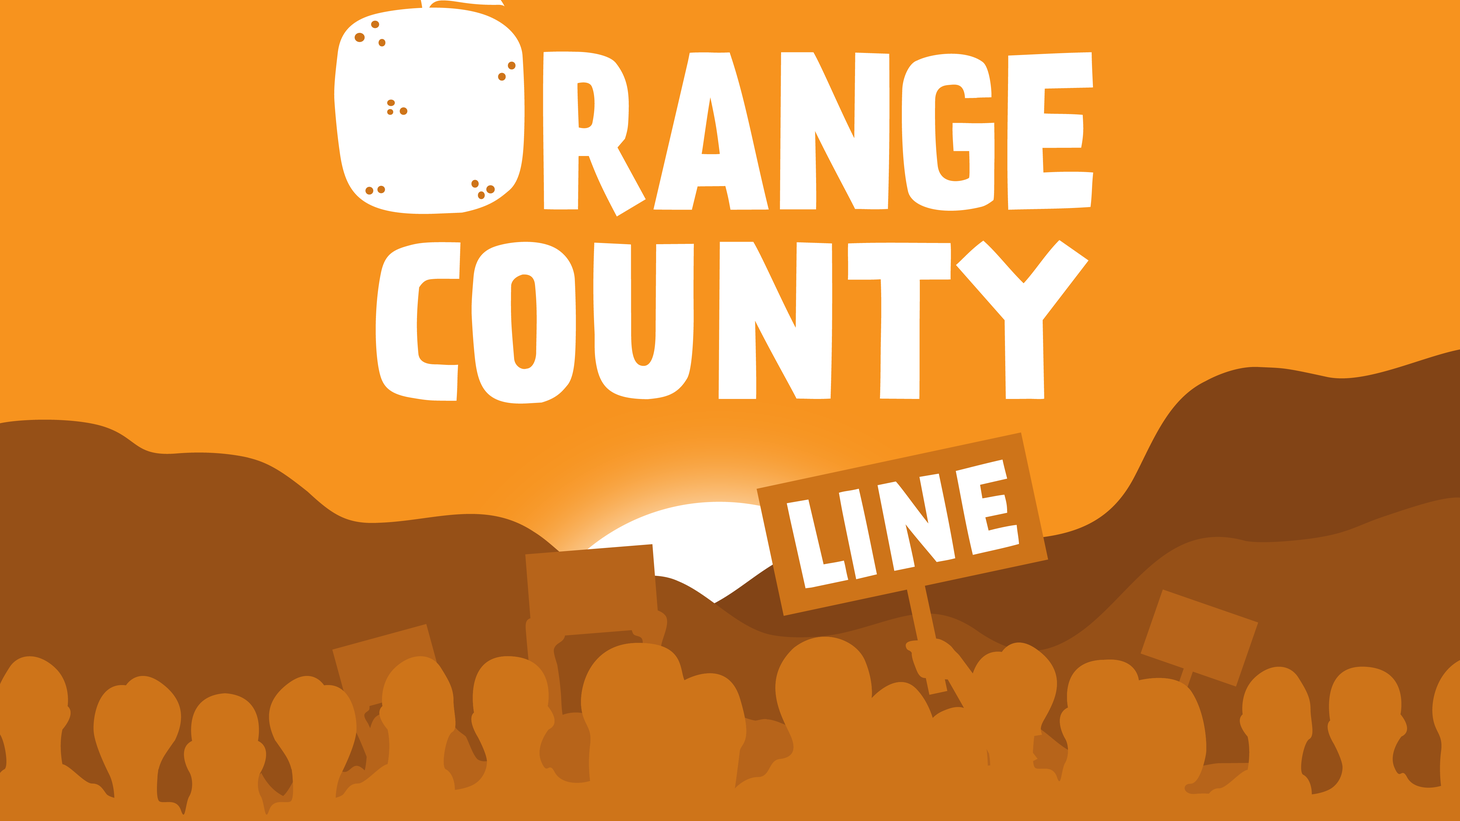 With the election of Supervisor Todd Spitzer to the Orange County District Attorney's office, three prominent OC politicians seem likely to run for the 3rd District, which goes from Yorba Linda to the north to Irvine in the South and extends into…